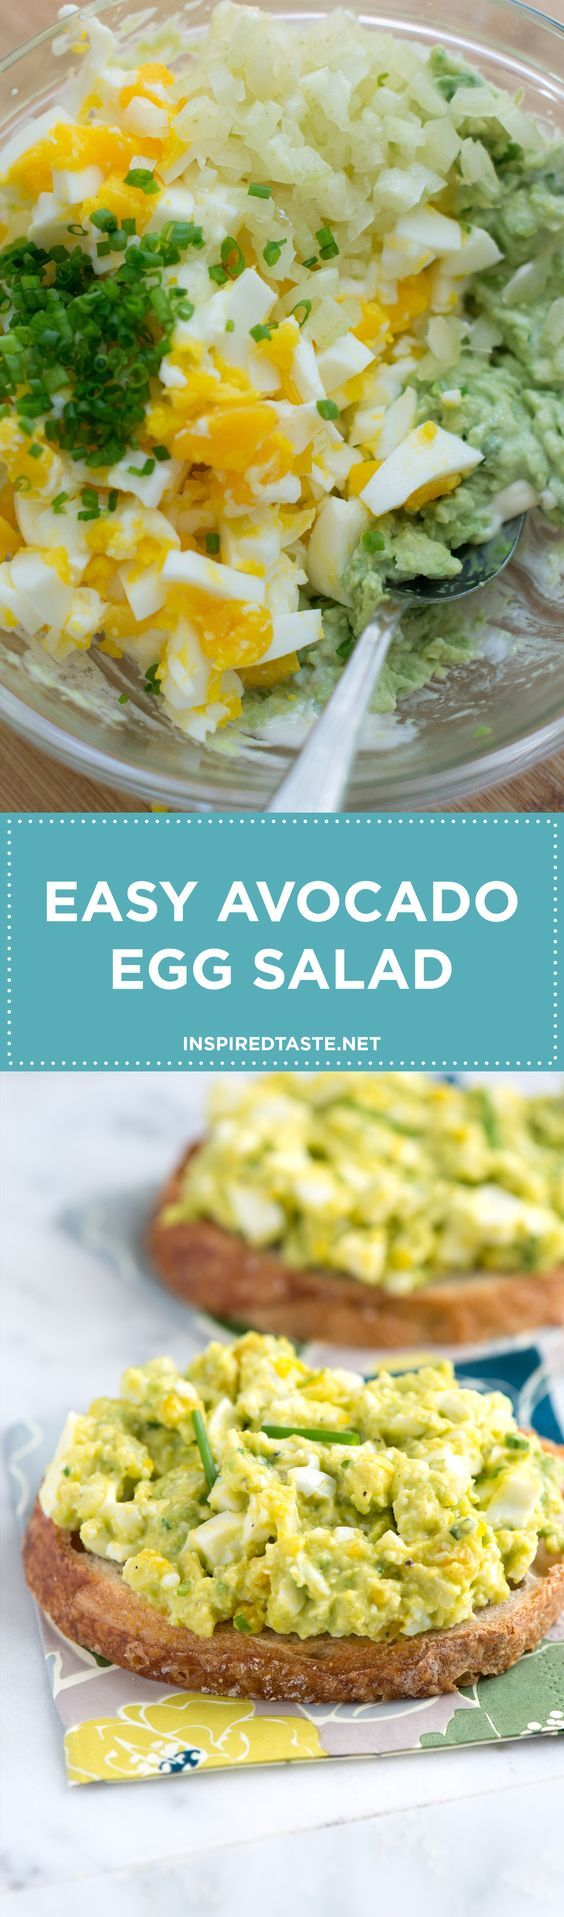 Our avocado egg salad recipe is very simple, all you need to do is mash avocado with a tiny bit of mayonnaise then stir in chopped eggs, celery, lemon juice and herbs. You could even swap nonfat or low-fat yogurt for the mayonnaise (sour cream works, too). Recipe on inspiredtaste.net | @inspiredtaste